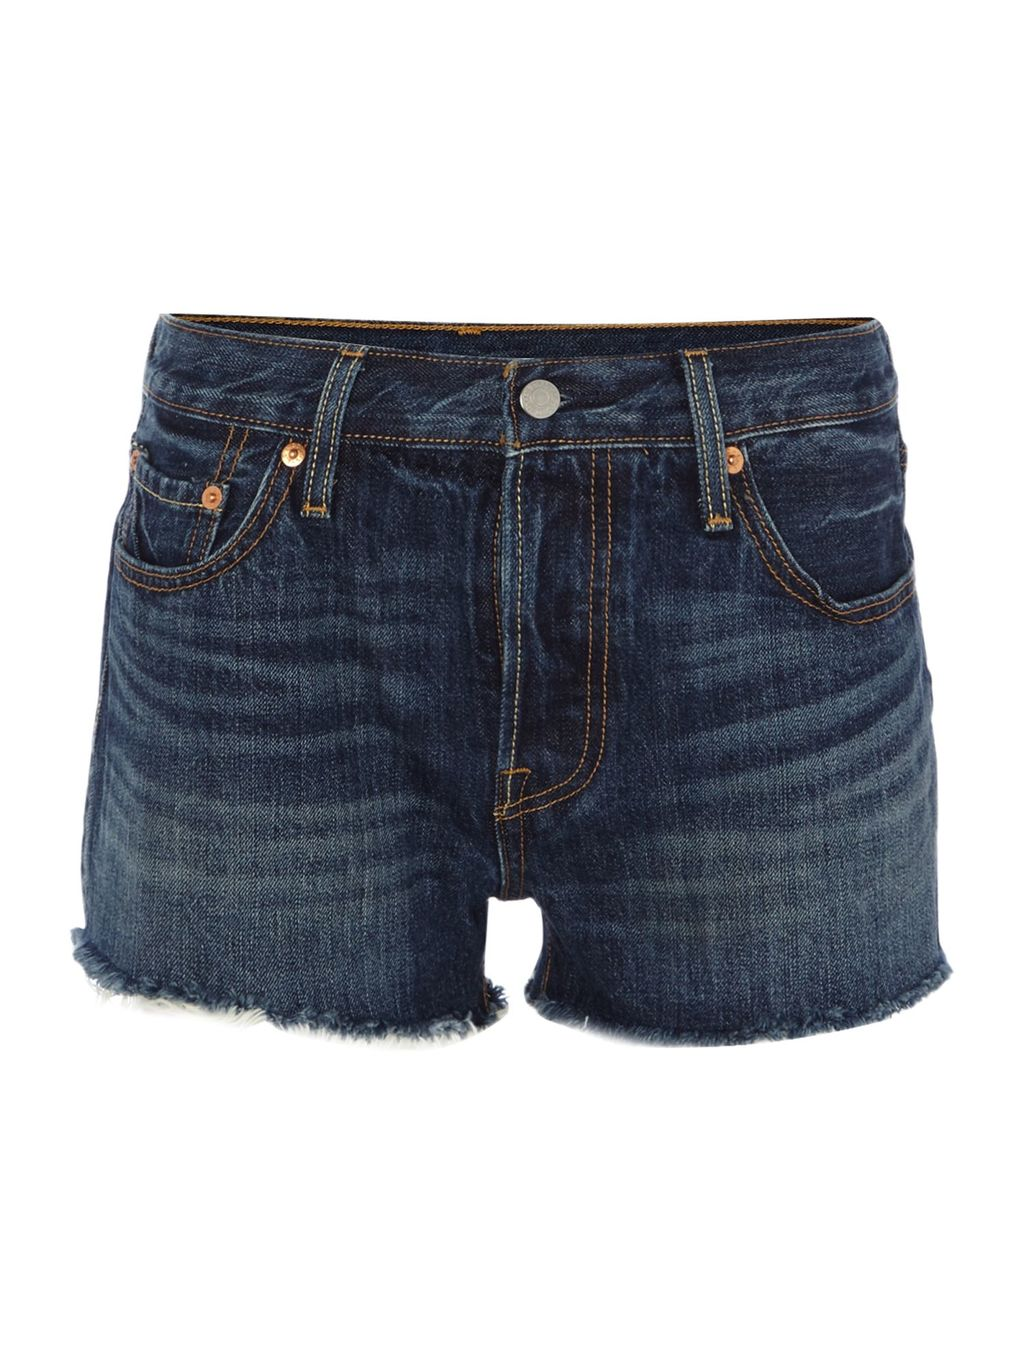 501 Denim Shorts In Echo Park, Denim Mid Wash - pattern: plain; pocket detail: traditional 5 pocket; waist: mid/regular rise; predominant colour: navy; occasions: casual, holiday; fibres: cotton - stretch; texture group: denim; pattern type: fabric; season: s/s 2016; style: denim; length: short shorts; fit: slim leg; wardrobe: holiday